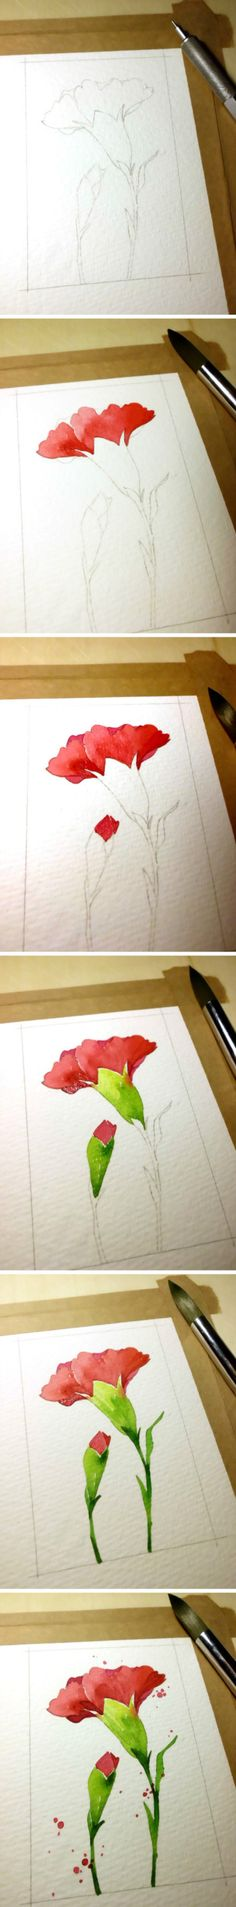 step by step watercolor tutorial_carnation